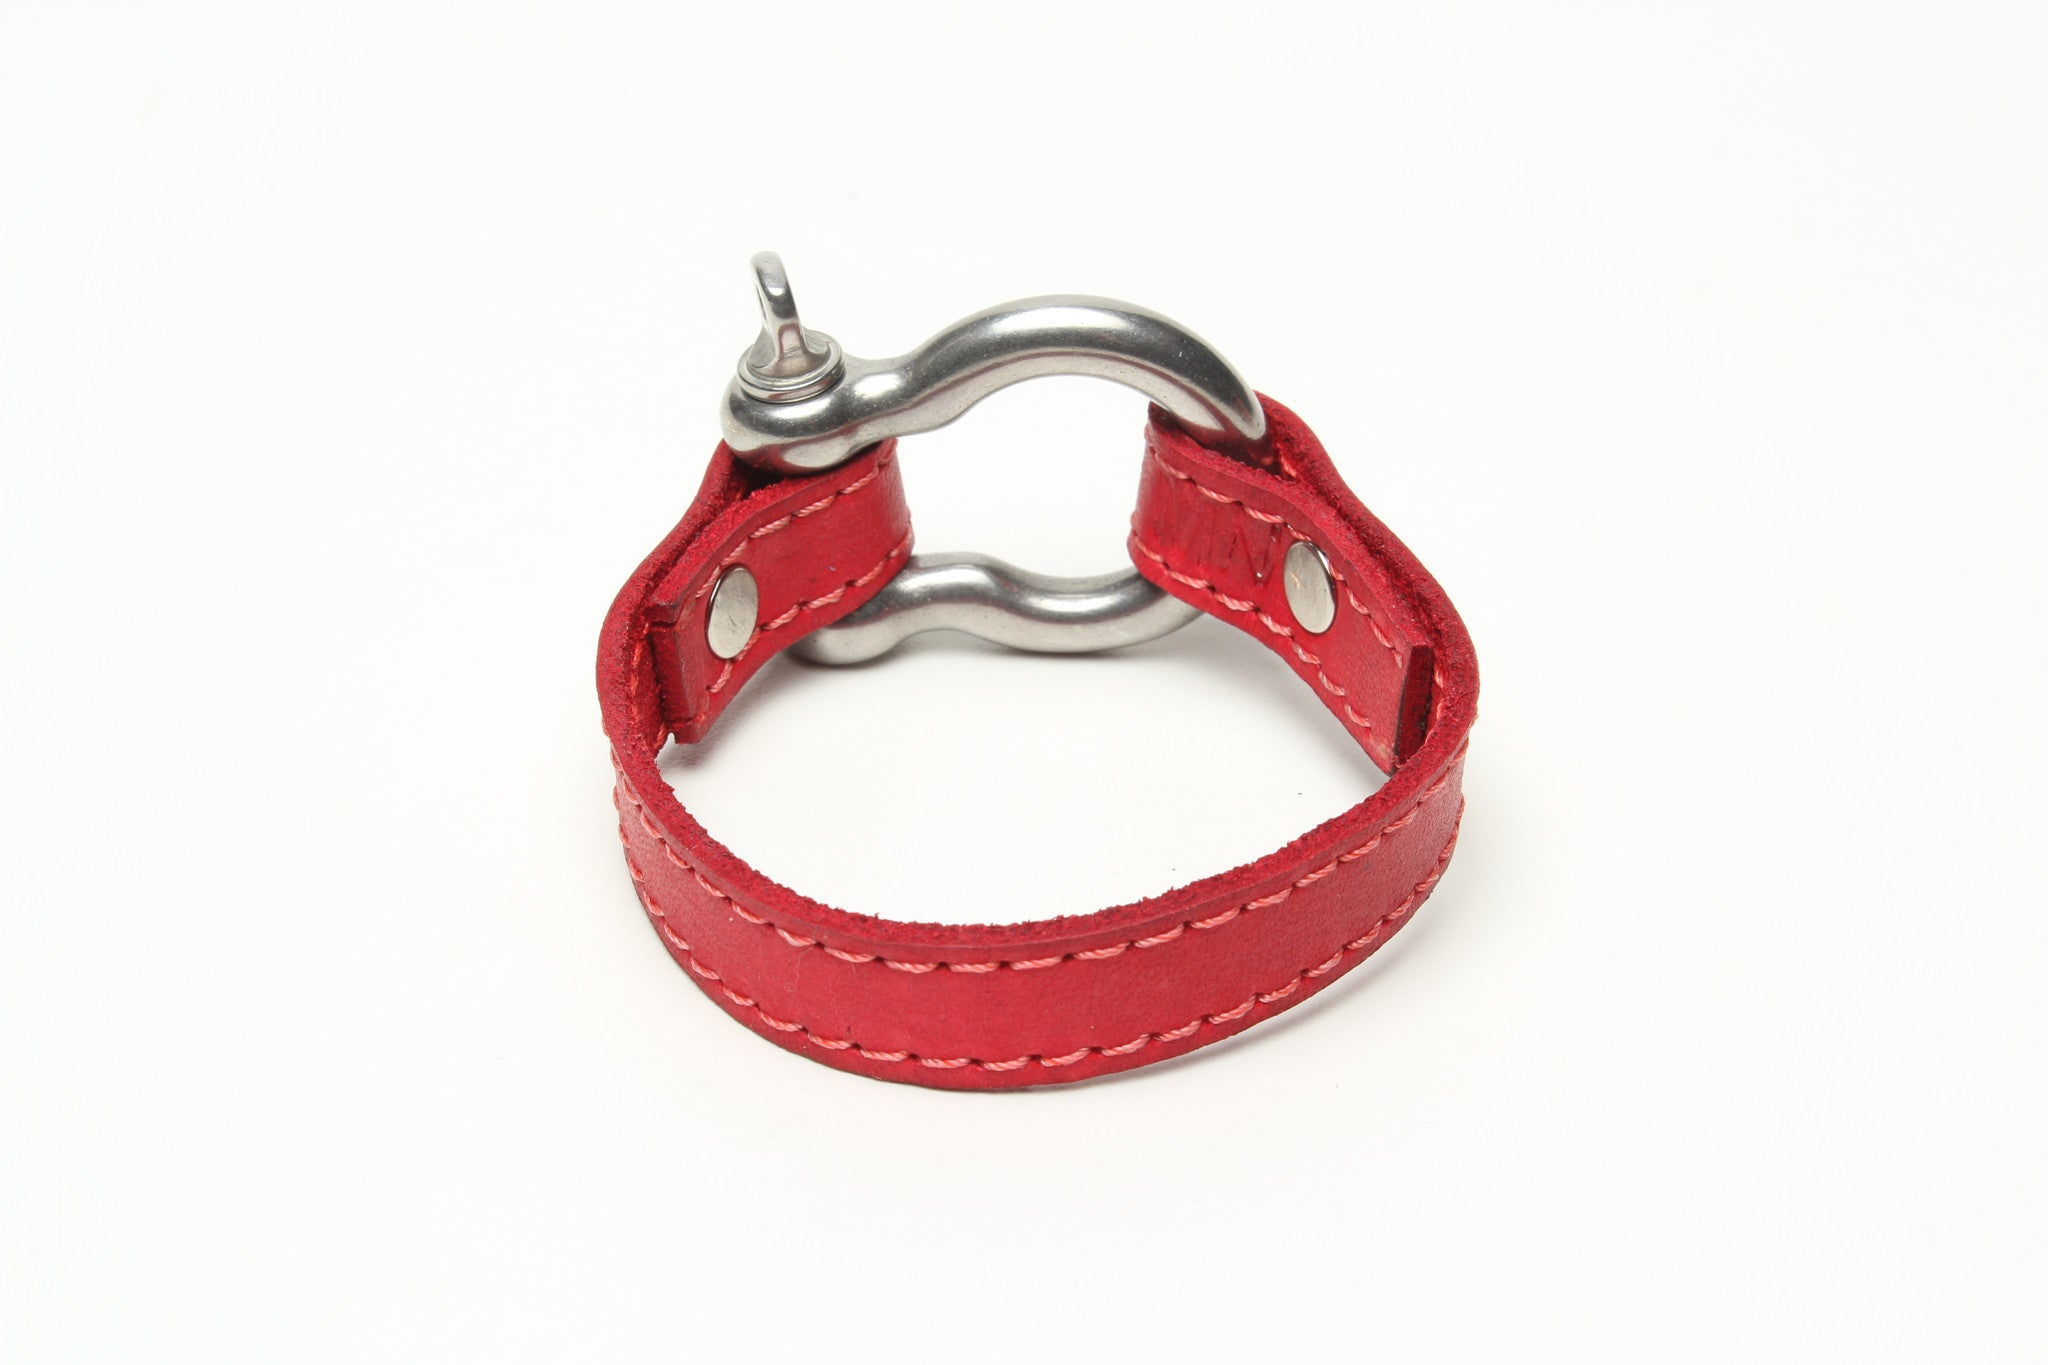 SIGNATURE STITCHED LEATHER AND STAINLESS STEEL SHACKLE BY NYET JEWELRY.